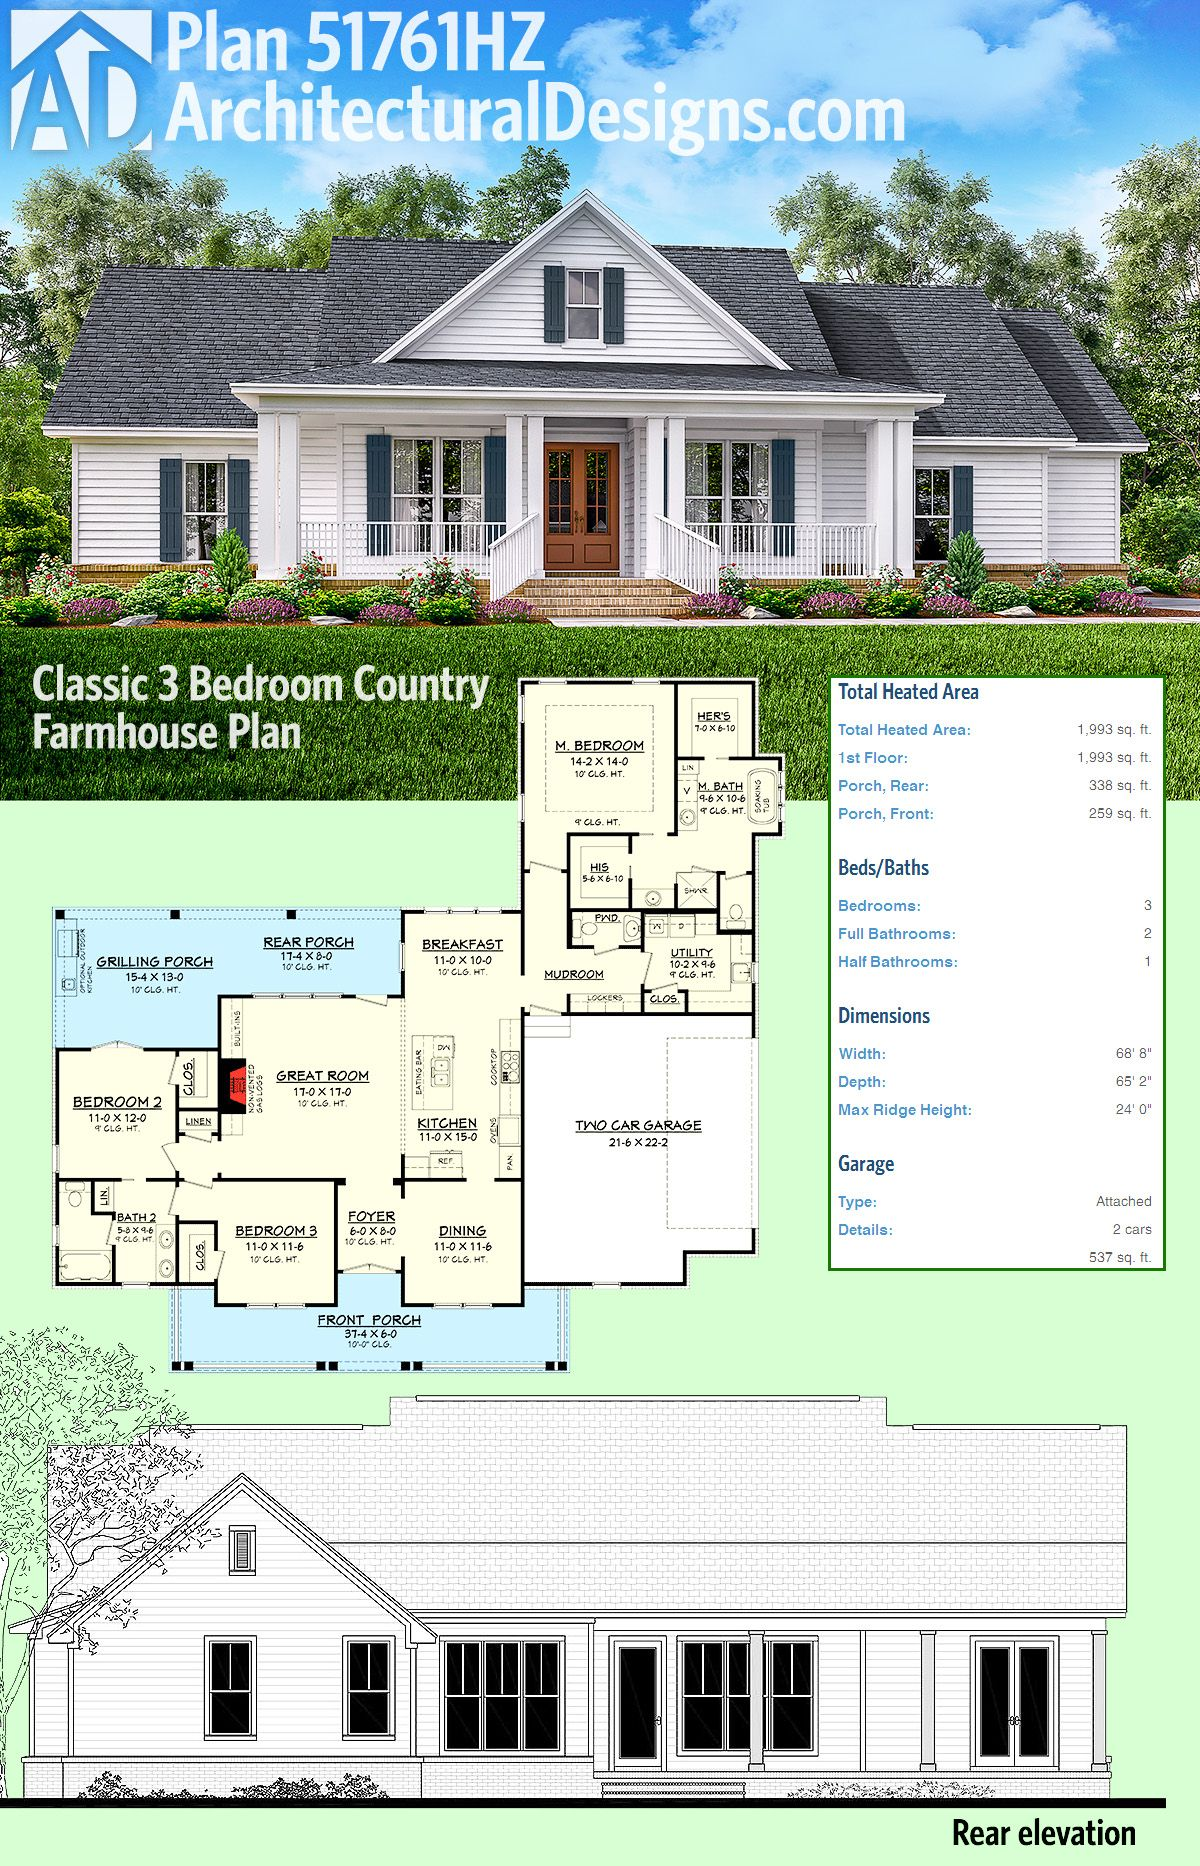 Plan 51761hz Classic 3 Bed Country Farmhouse Plan An